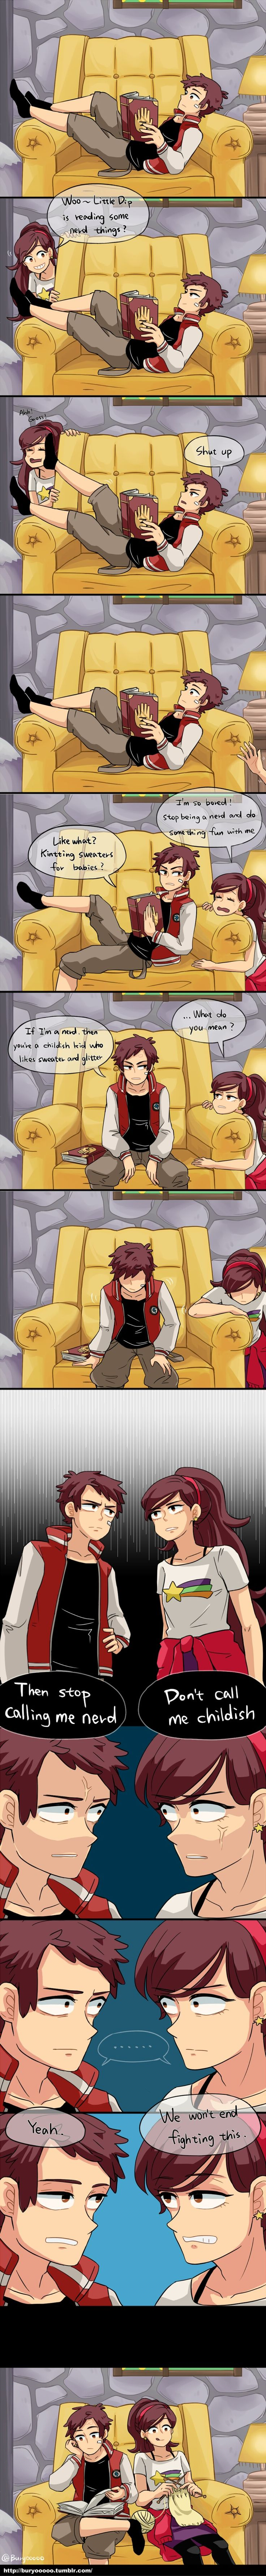 i would totally watch this if this was in Gravity Falls...